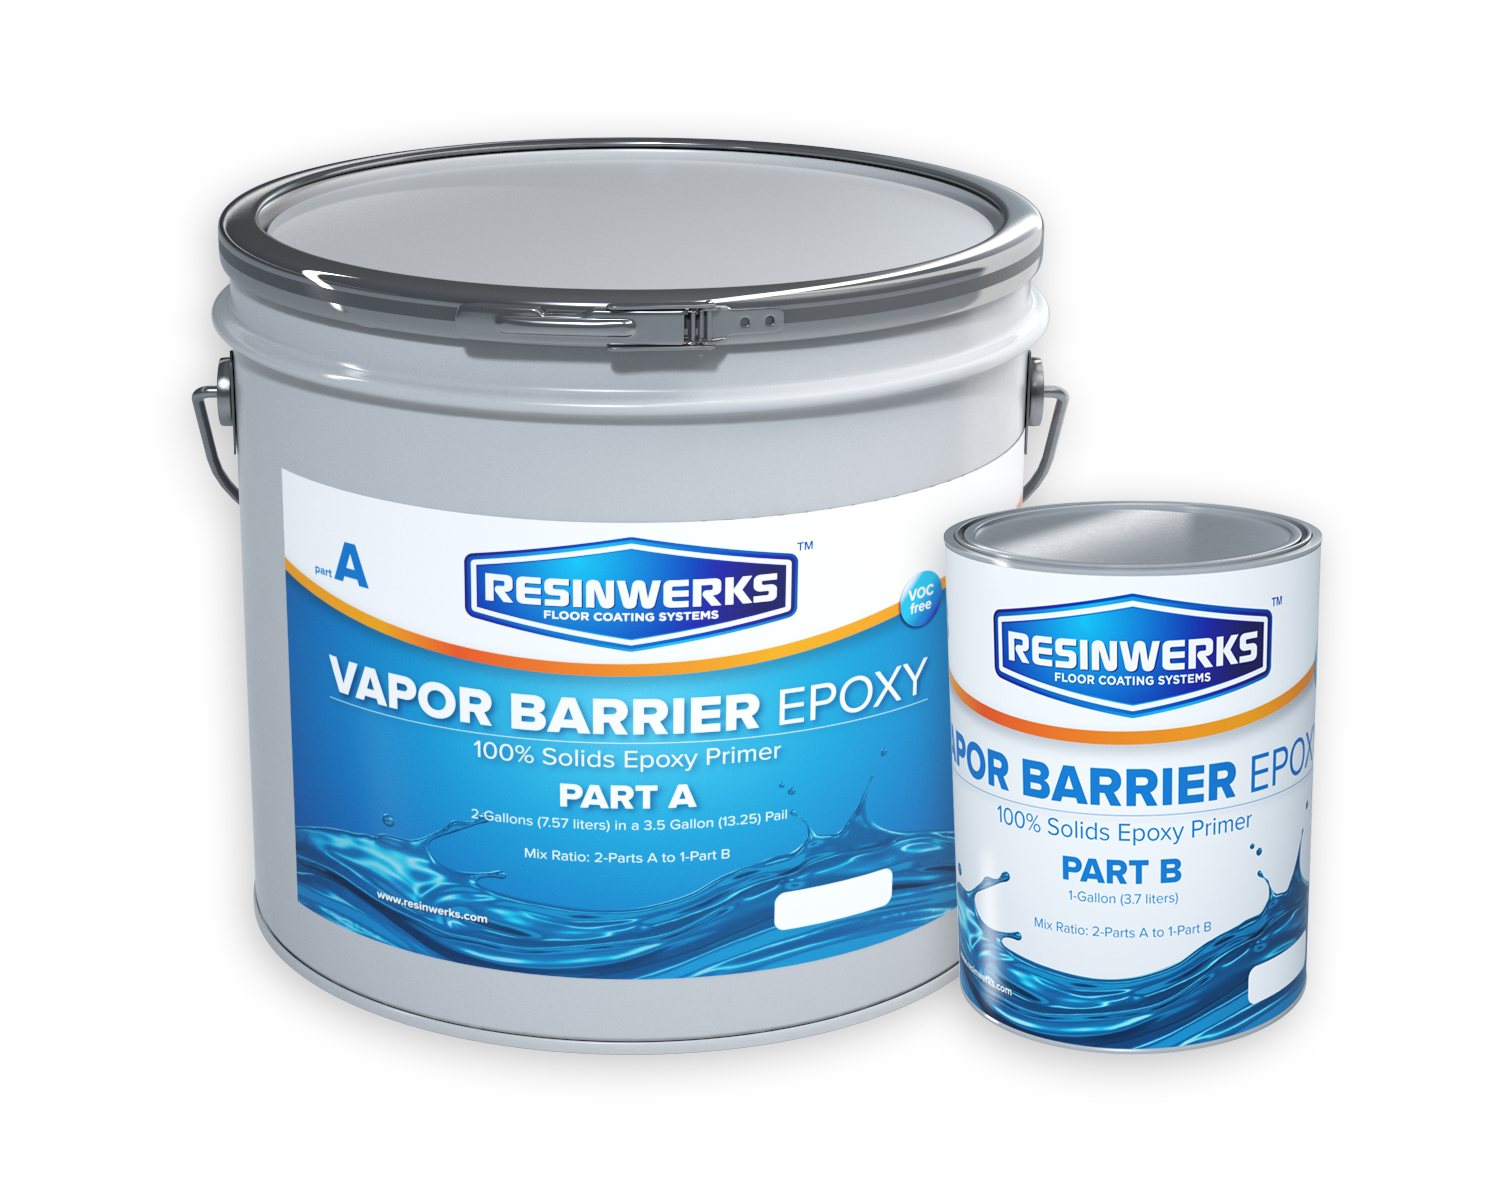 Vapor Barrier Epoxy